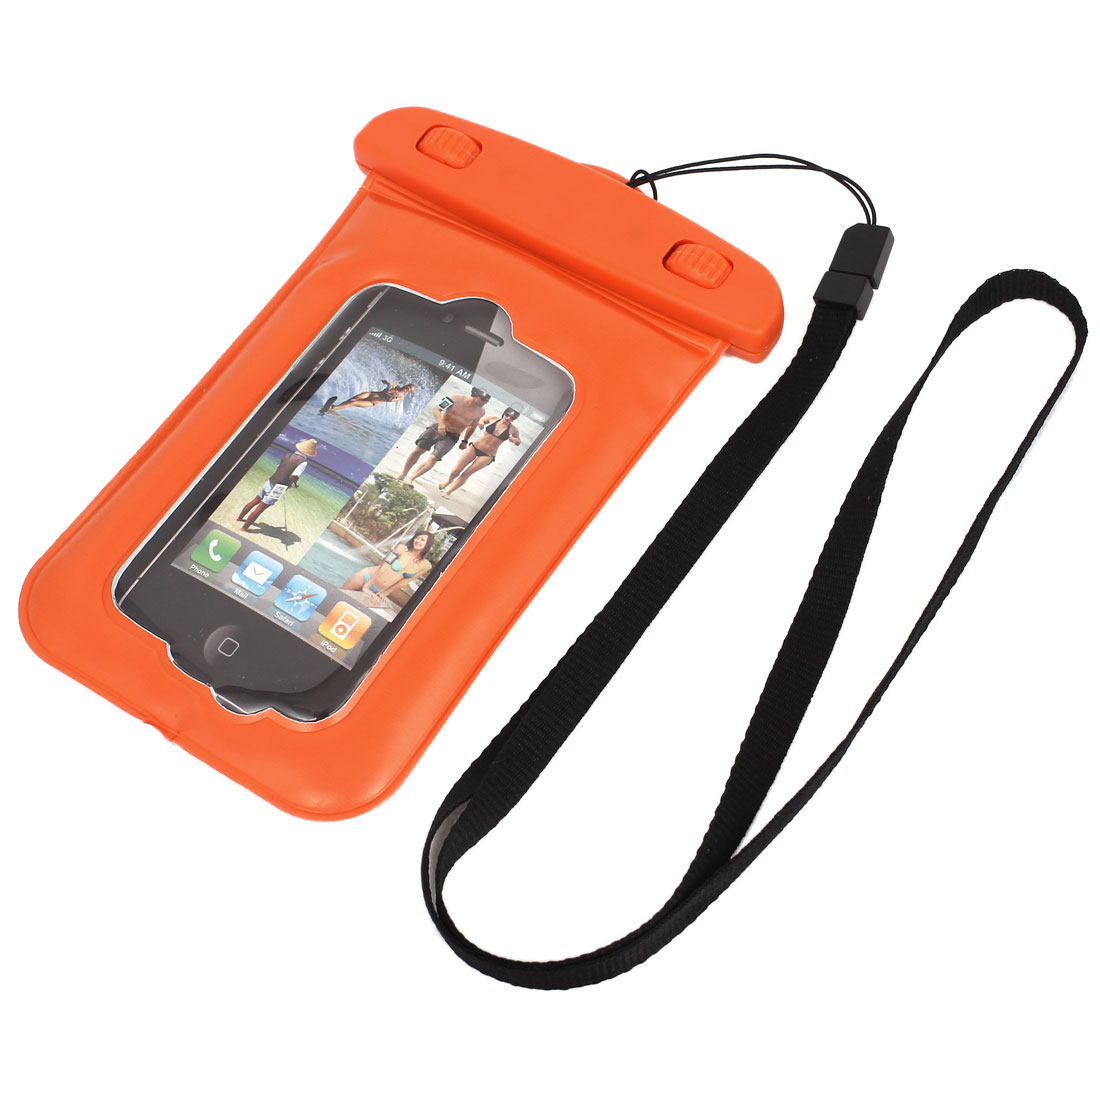 Waterproof Bag Holder Pouch Case Orange for iPhone 4/4S w Neck Strap